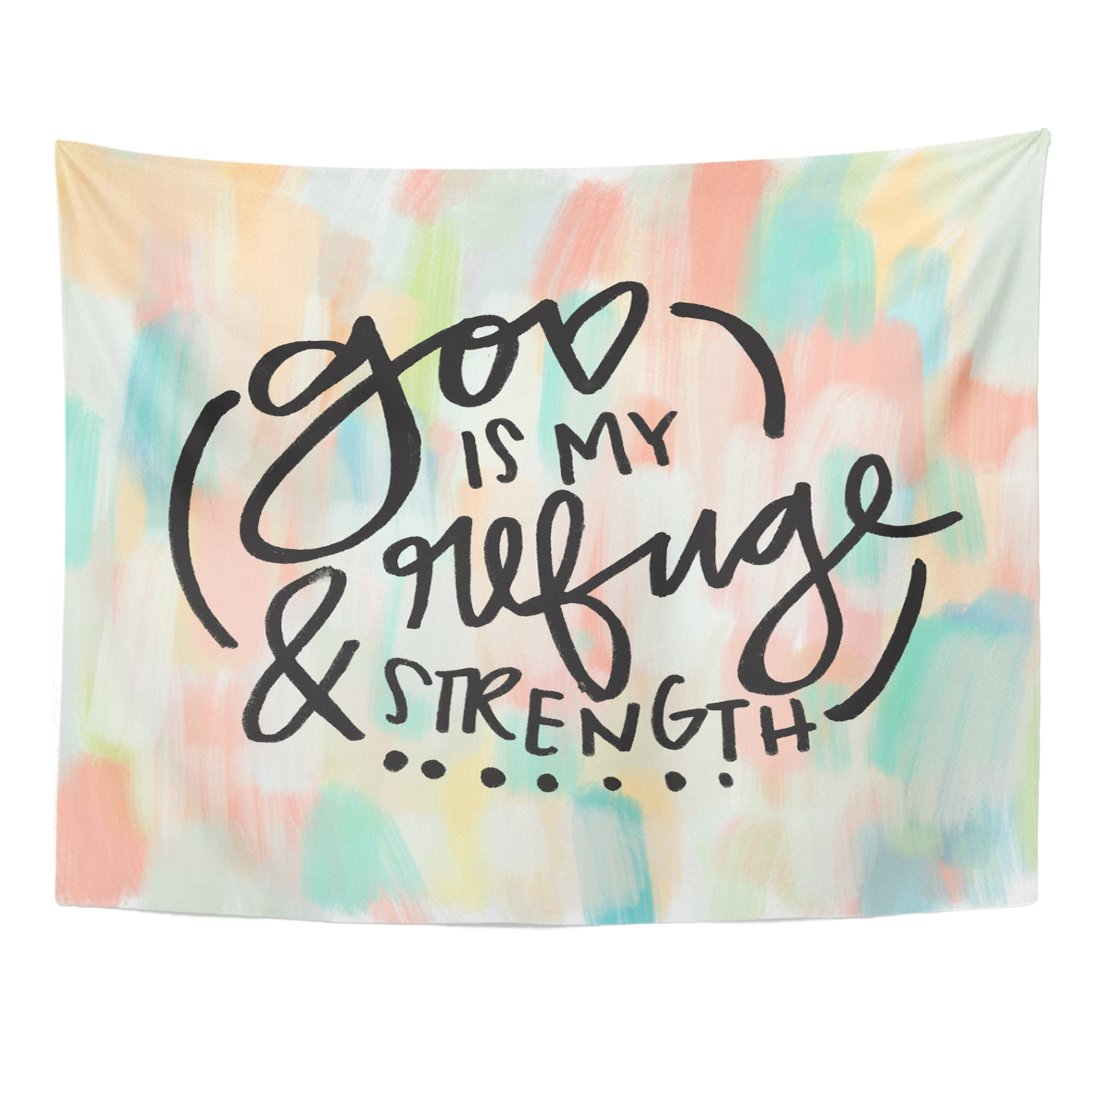 Breezat Tapestry Brush Christian God Is My Refuge and Strength Quote Bible Verse Calligraphy Home Decor Wall Hanging for Living Room Bedroom Dorm 60x80 Inches